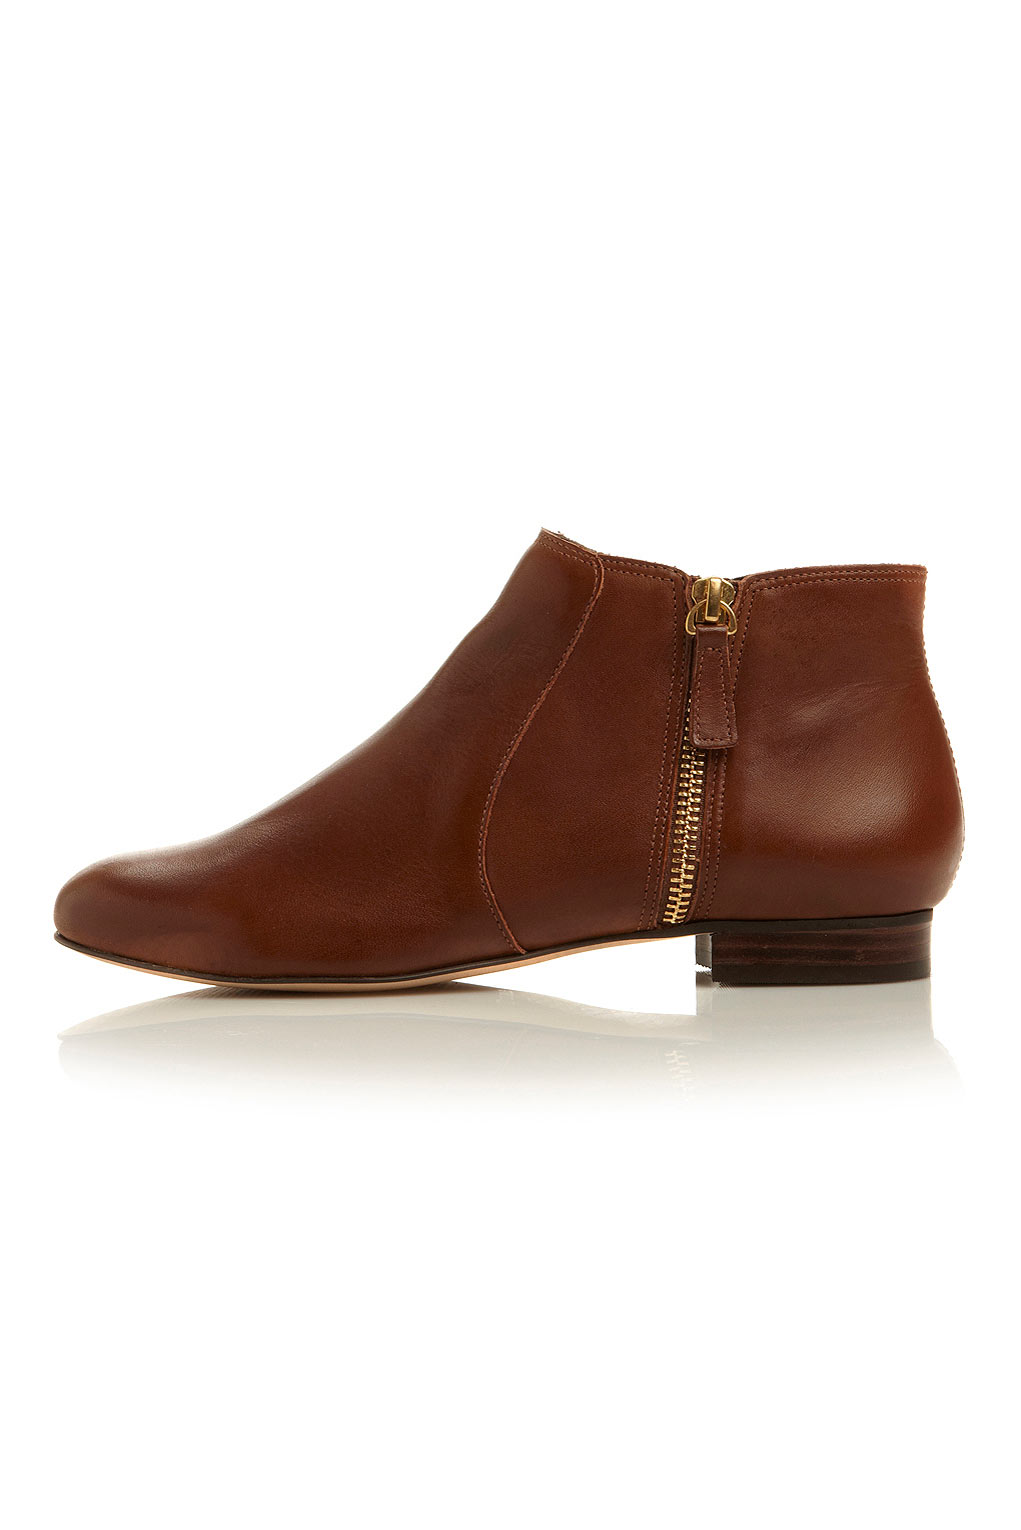 topshop pandas side zip detail ankle boots in brown